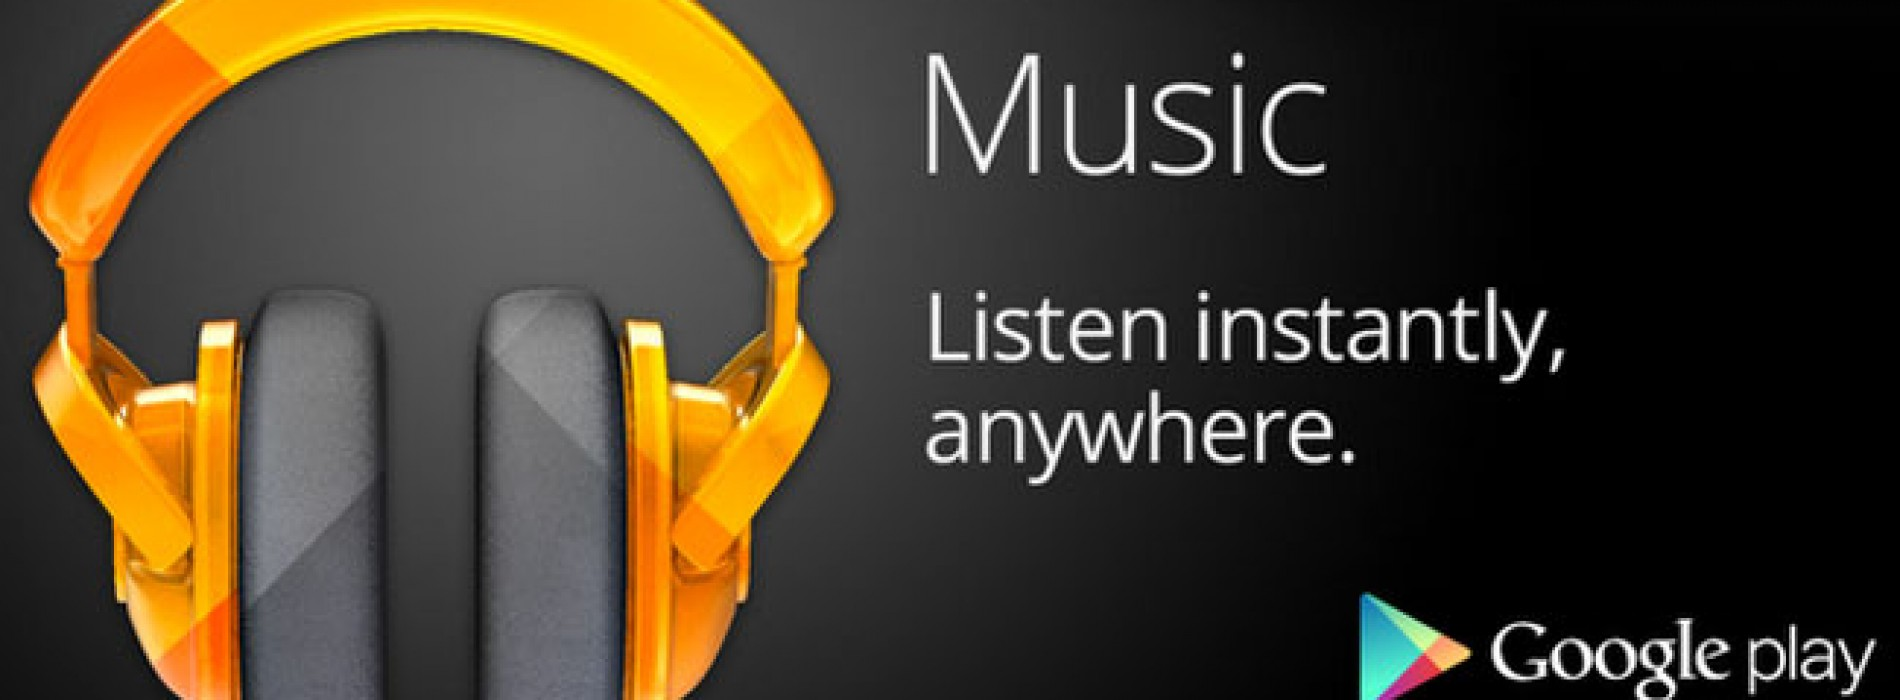 Google Play Music update brings playlist-related radio stations